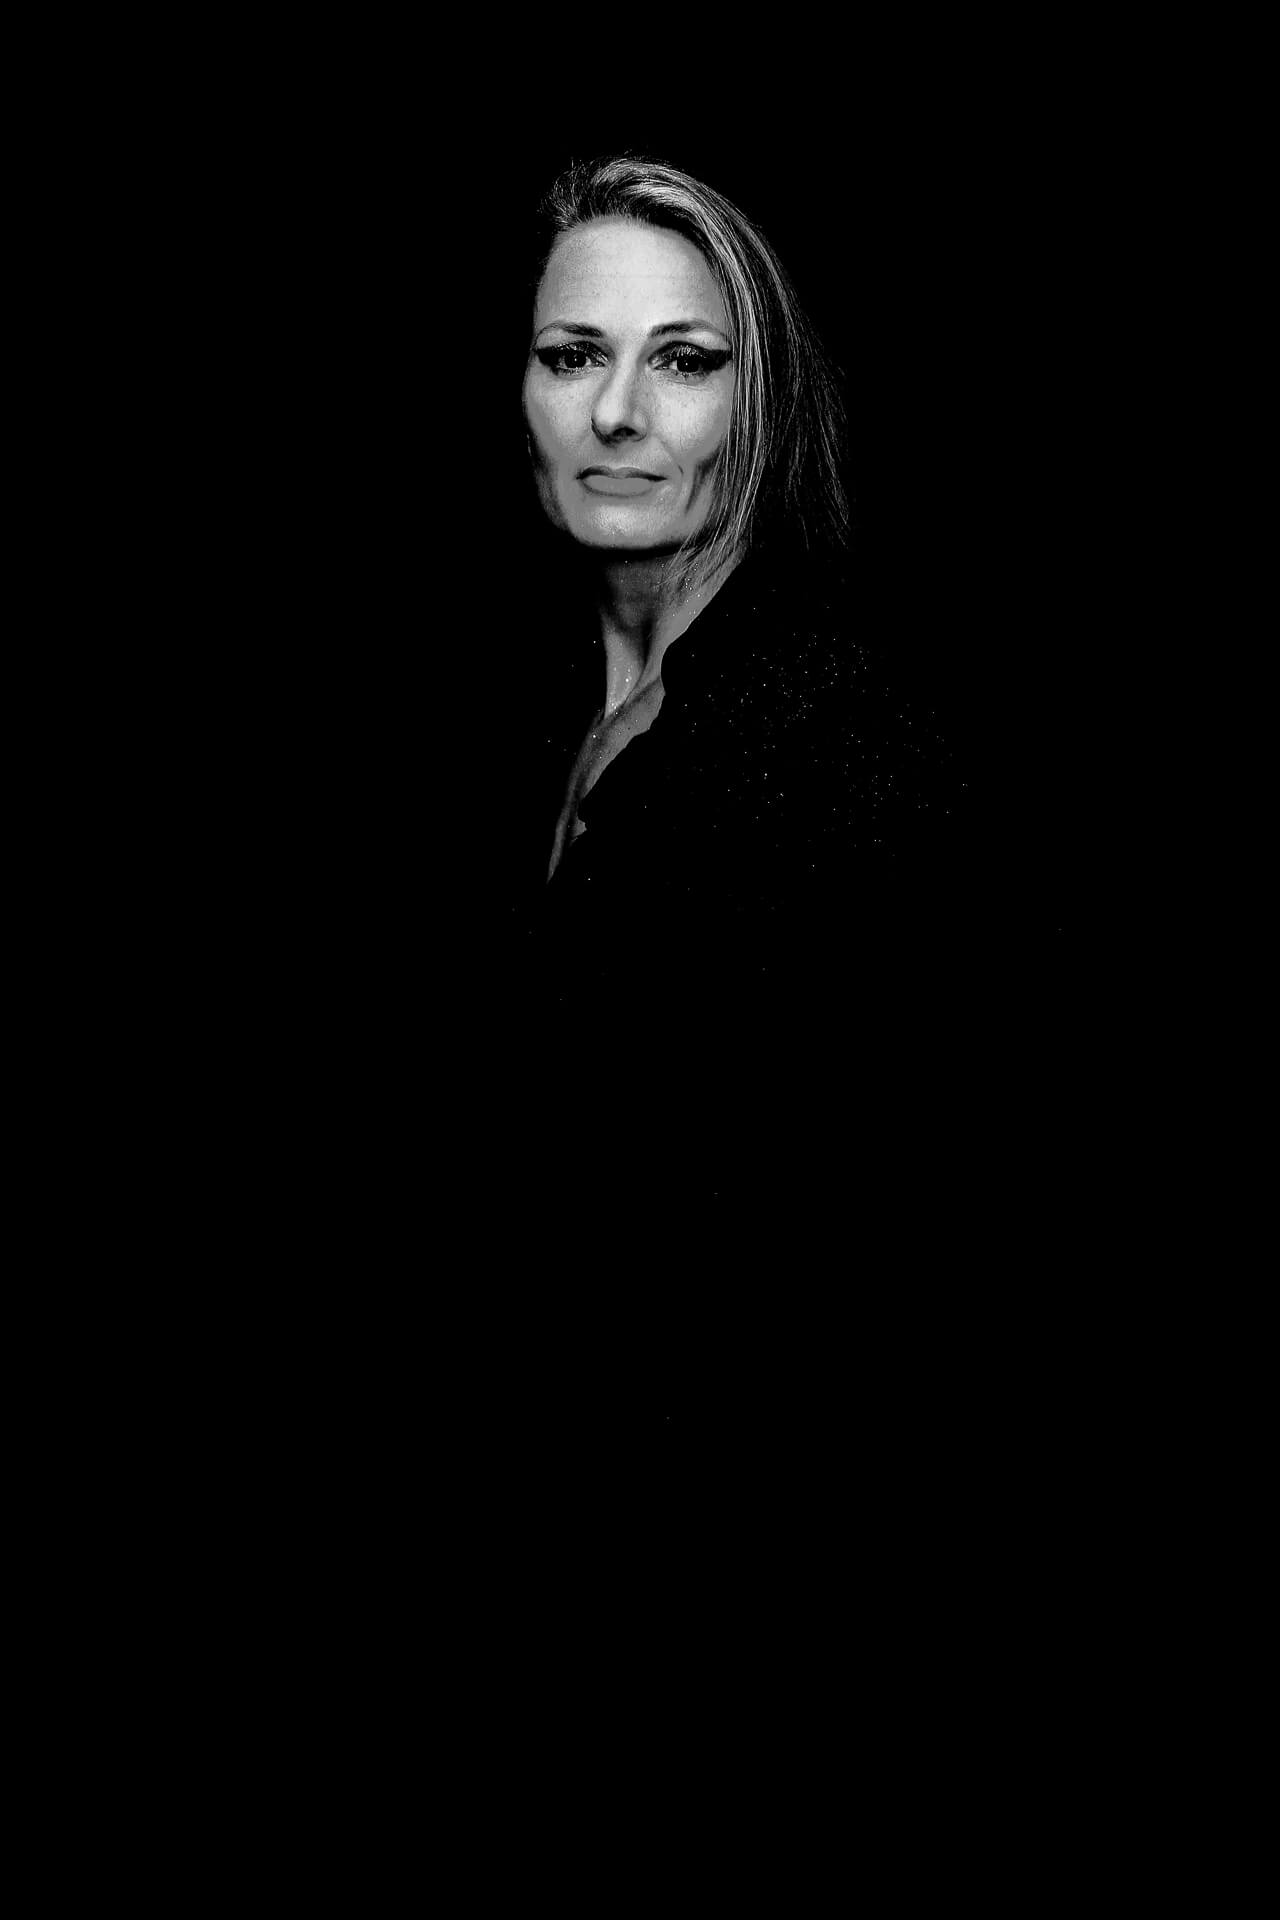 A 3/4 length body shot in black & white of Liz. Her body is facing to the left of the camera, although she has her head turned towards and is facing the camera, she looks directly at the lens. Only her head is lit and is therefore visible in the image, the remainder of the image and background are black. She has her hair over the left of her head, and a serious expression upon her face.